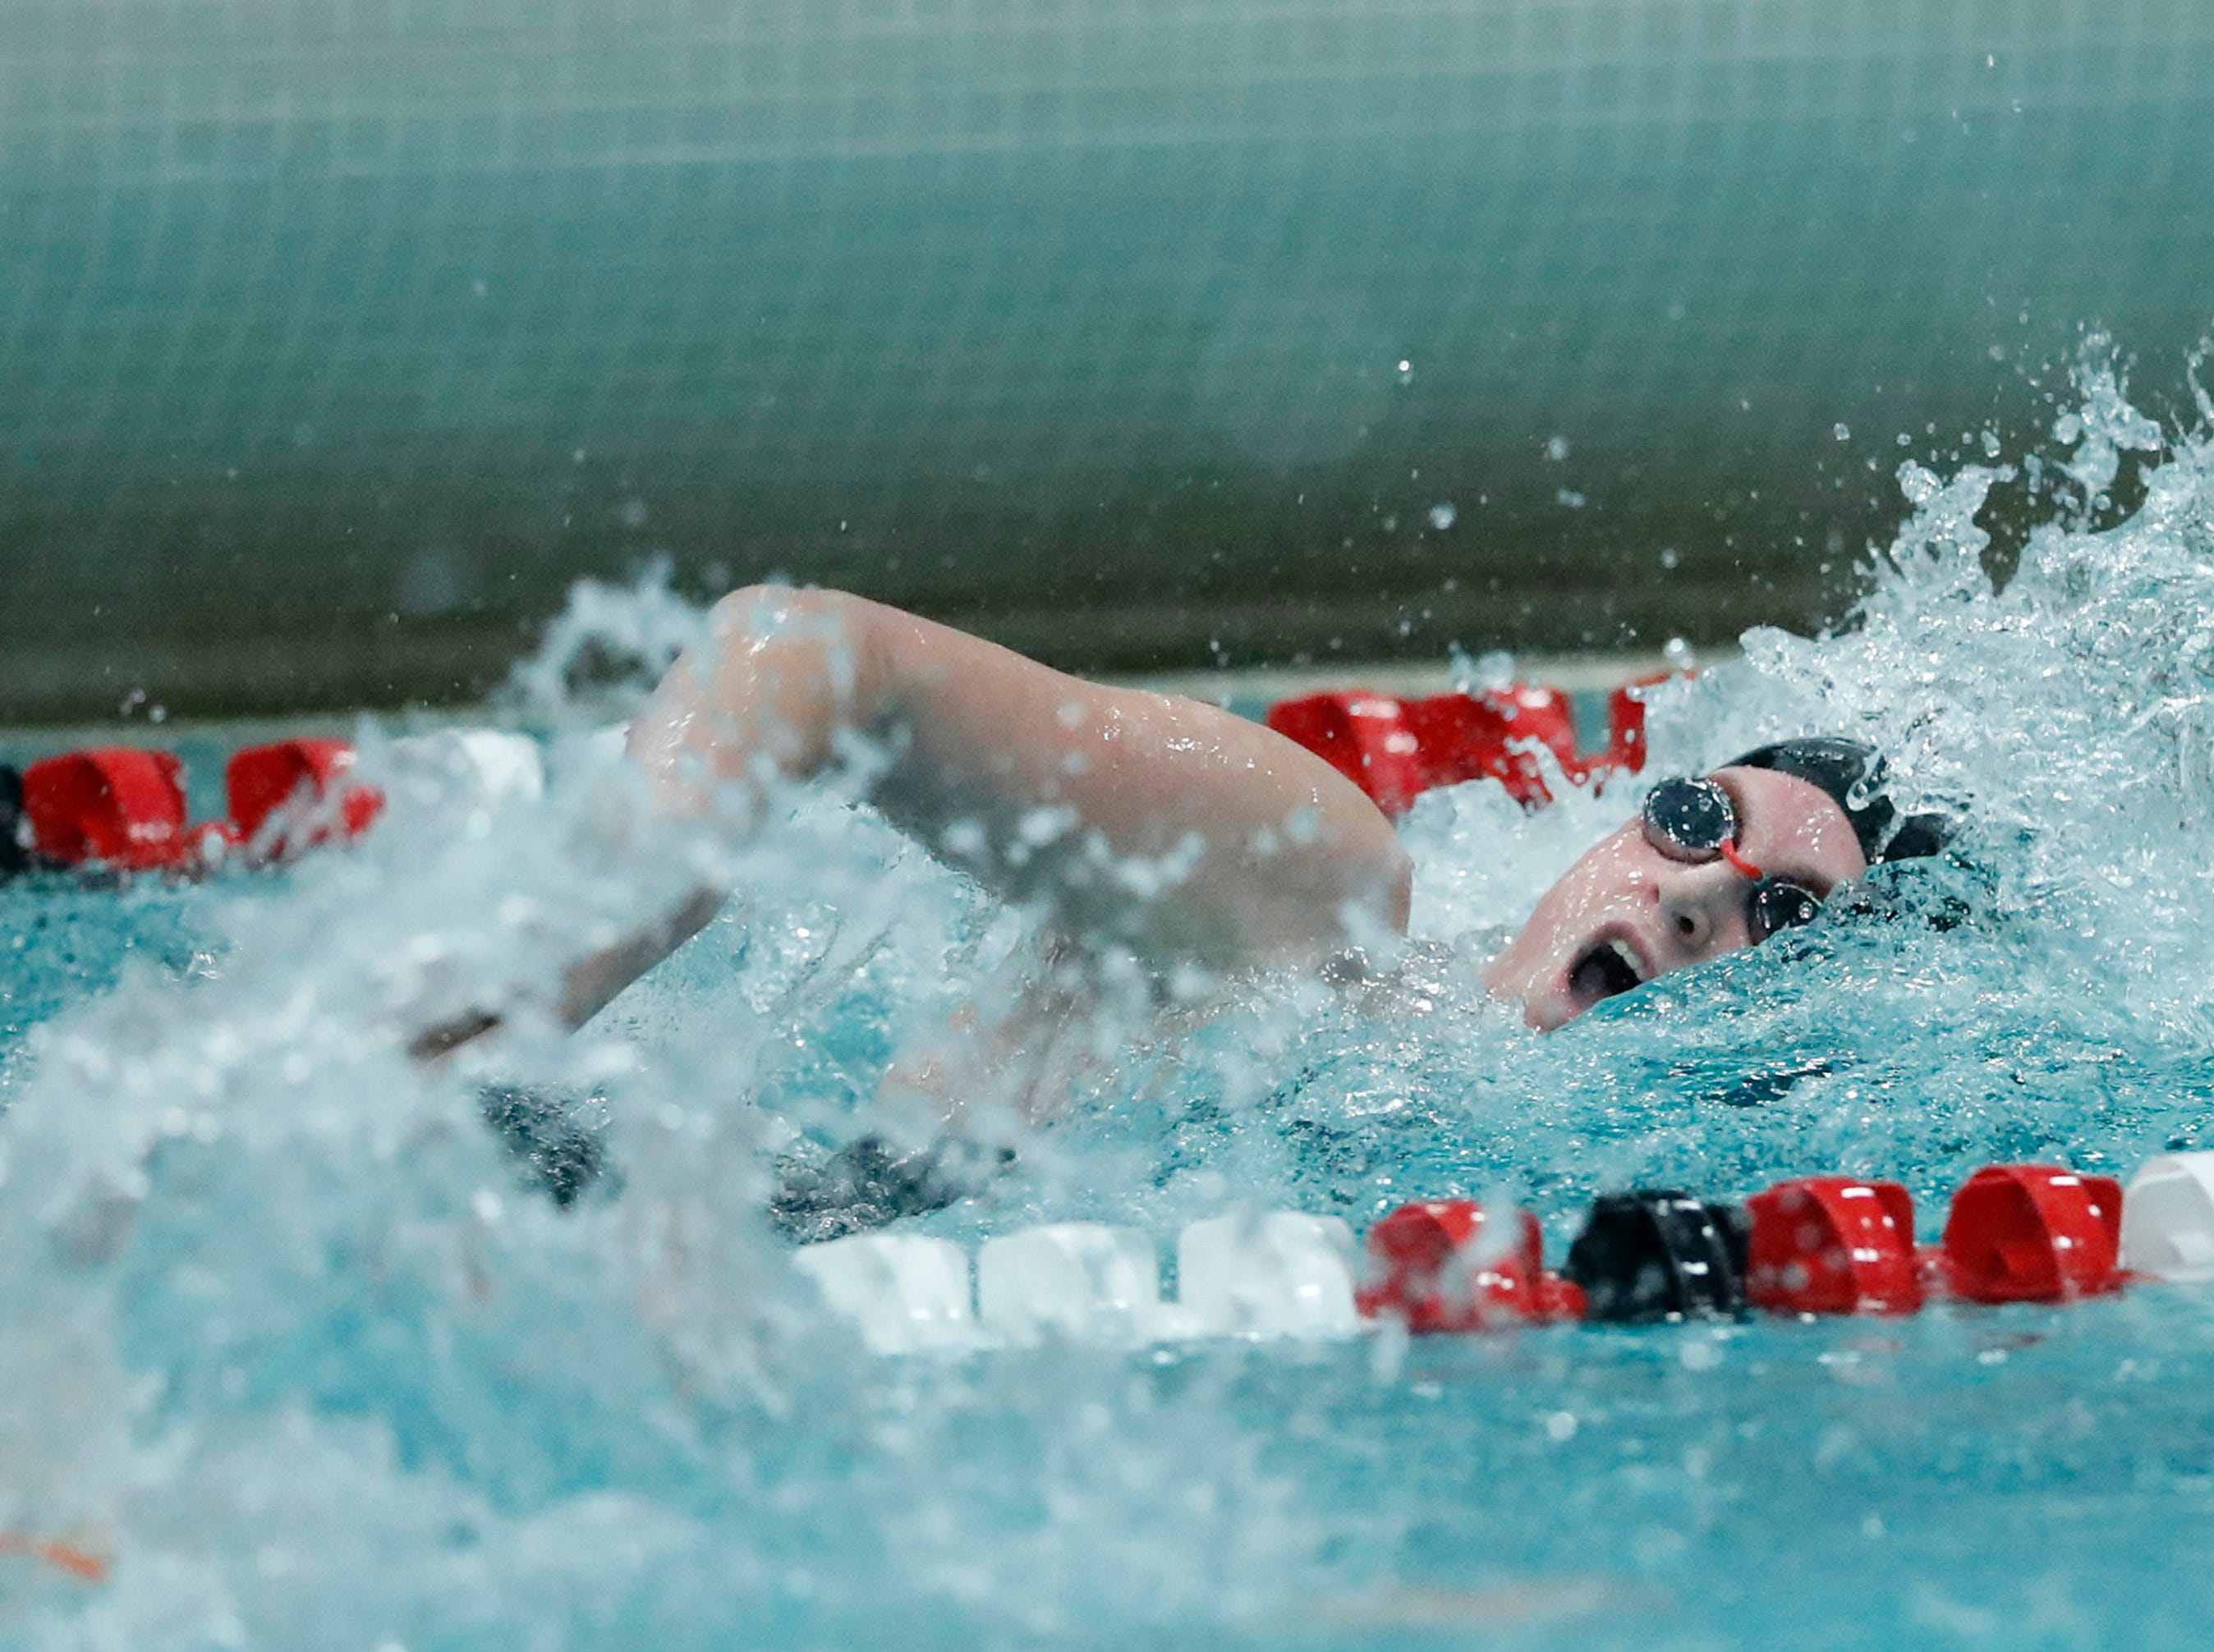 The Sturgeon Bay Co-op 200 yard freestyle relay team races during the WIAA Division 2 State Swimming and Diving meet Friday, Nov. 9, 2018, at the UW Natatorium in Madison, Wis.Danny Damiani/USA TODAY NETWORK-Wisconsin